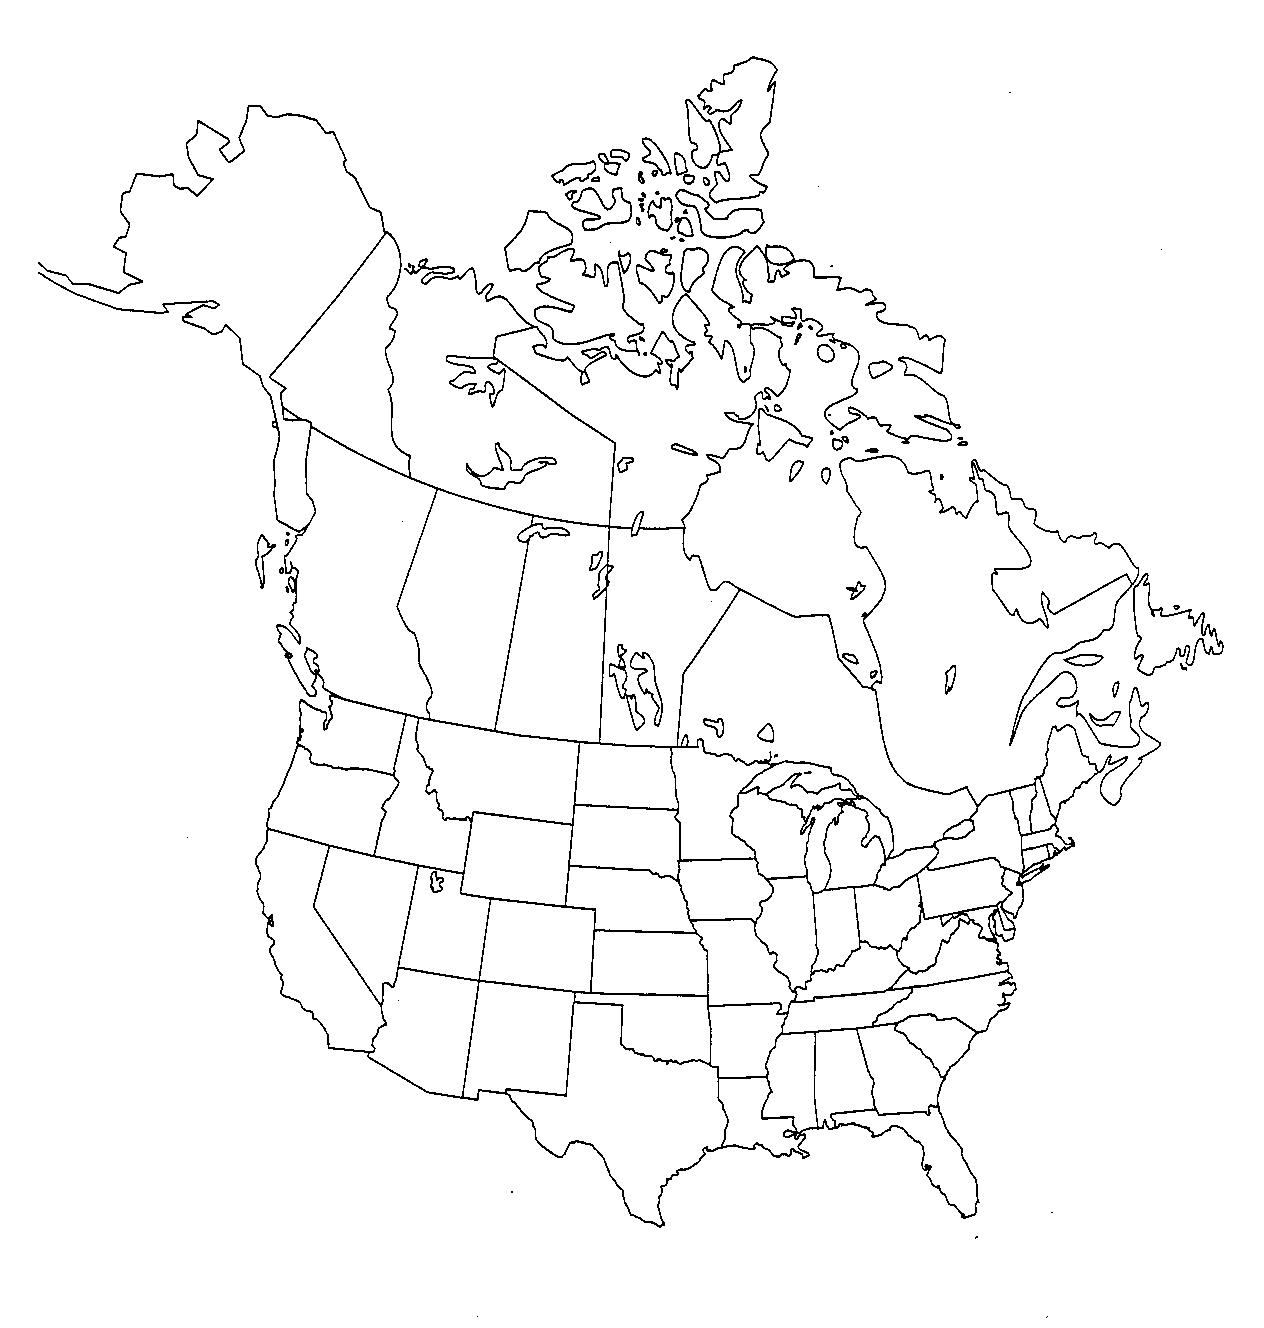 US And Canada Printable Blank Maps Royalty Free Clip Art Abcteach - Map of canada and us